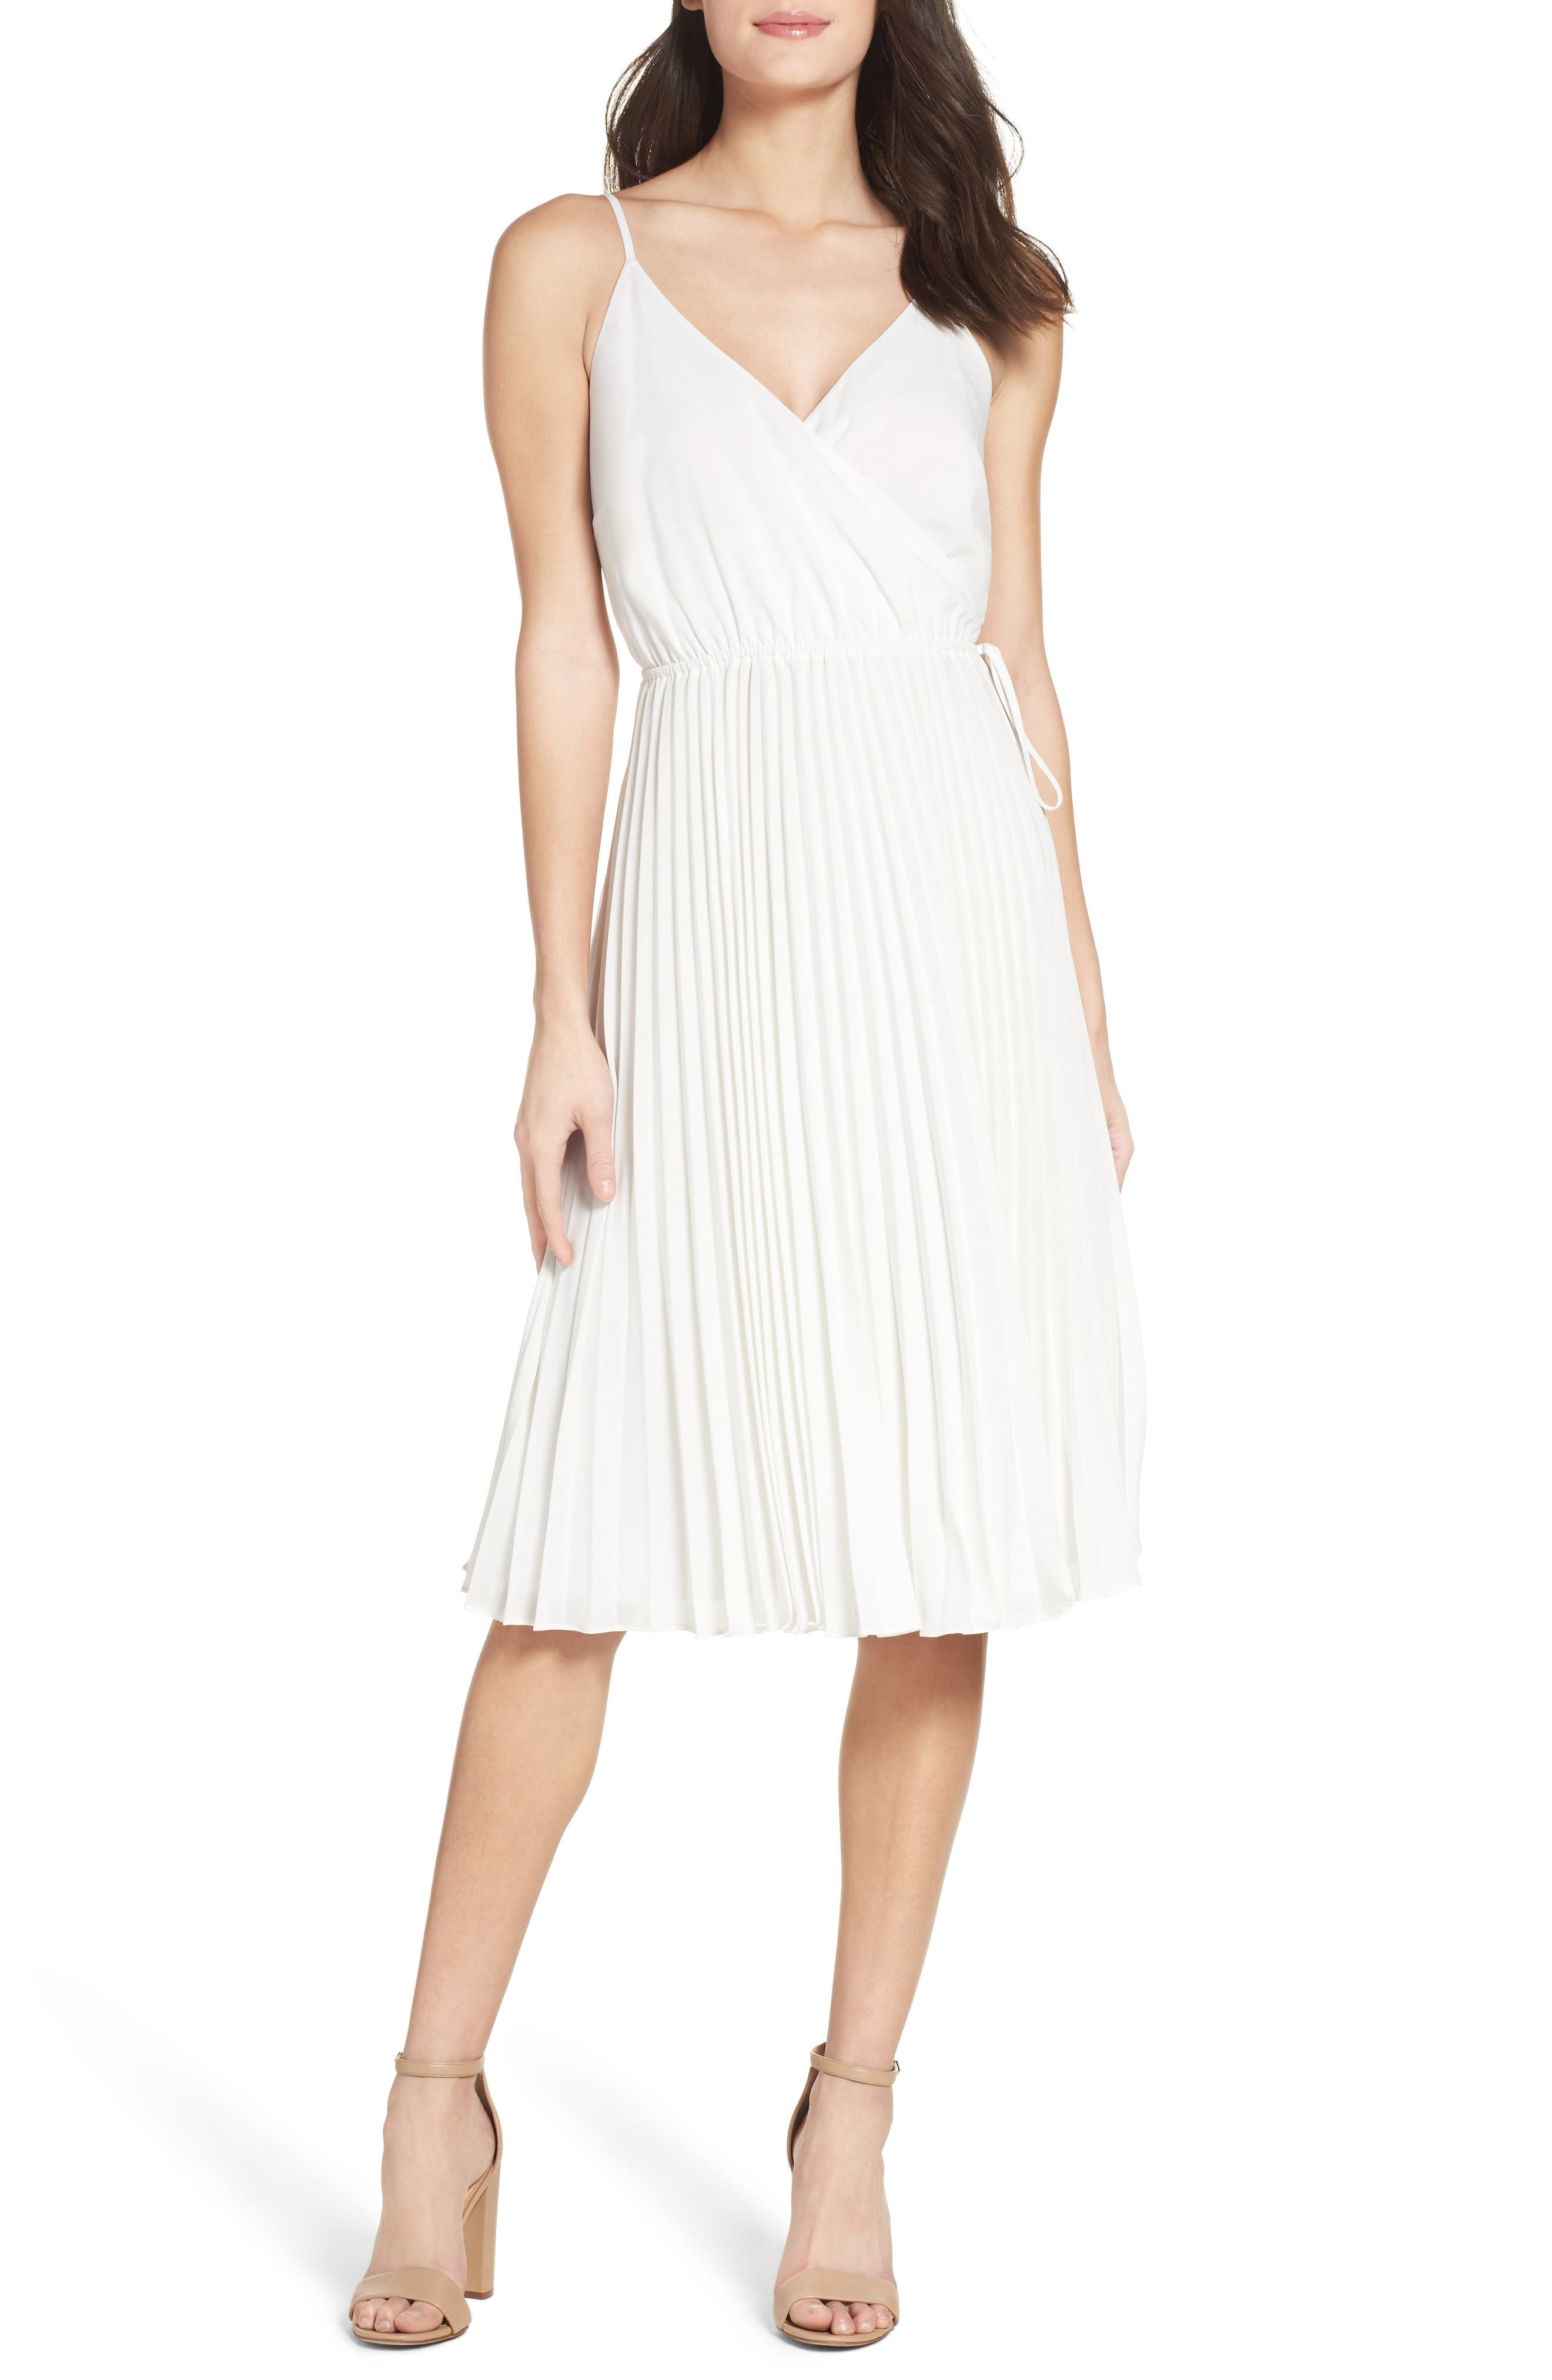 Lily Pond Fit & Flare Dress,                         Main,                         color, WHITE